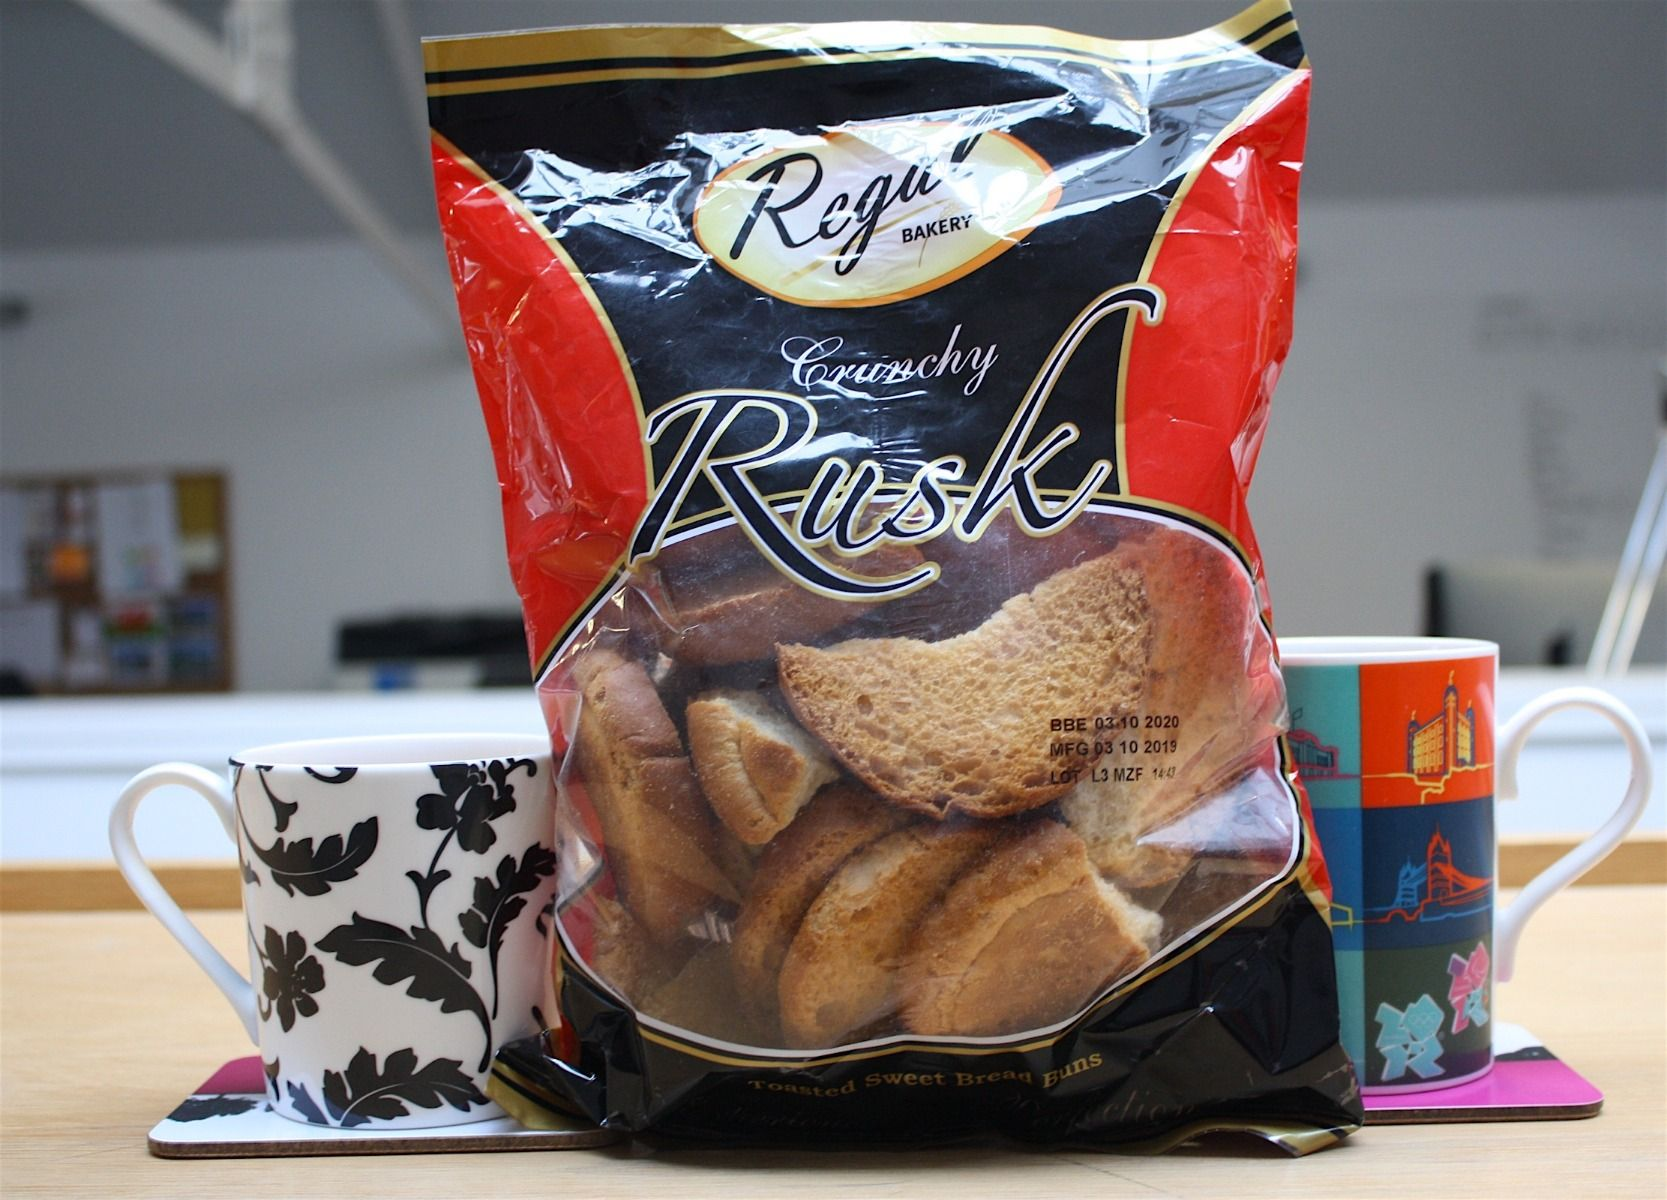 Regal Crunchy Tea Rusks Dunking Challenge